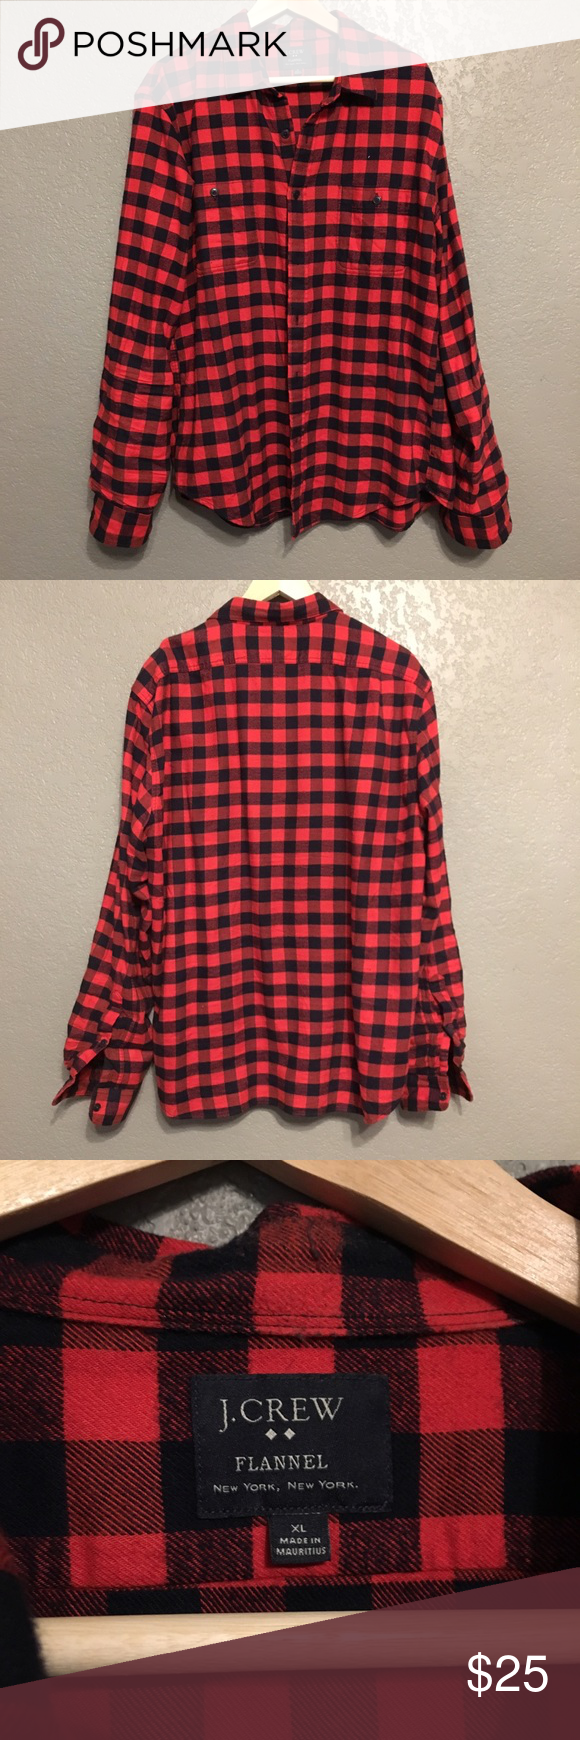 J.Crew Buffalo Check Flannel Button Down Like new J.Crew Flannel Button down in black and white buffalo check. Size men's XL. J. Crew Shirts Casual Button Down Shirts